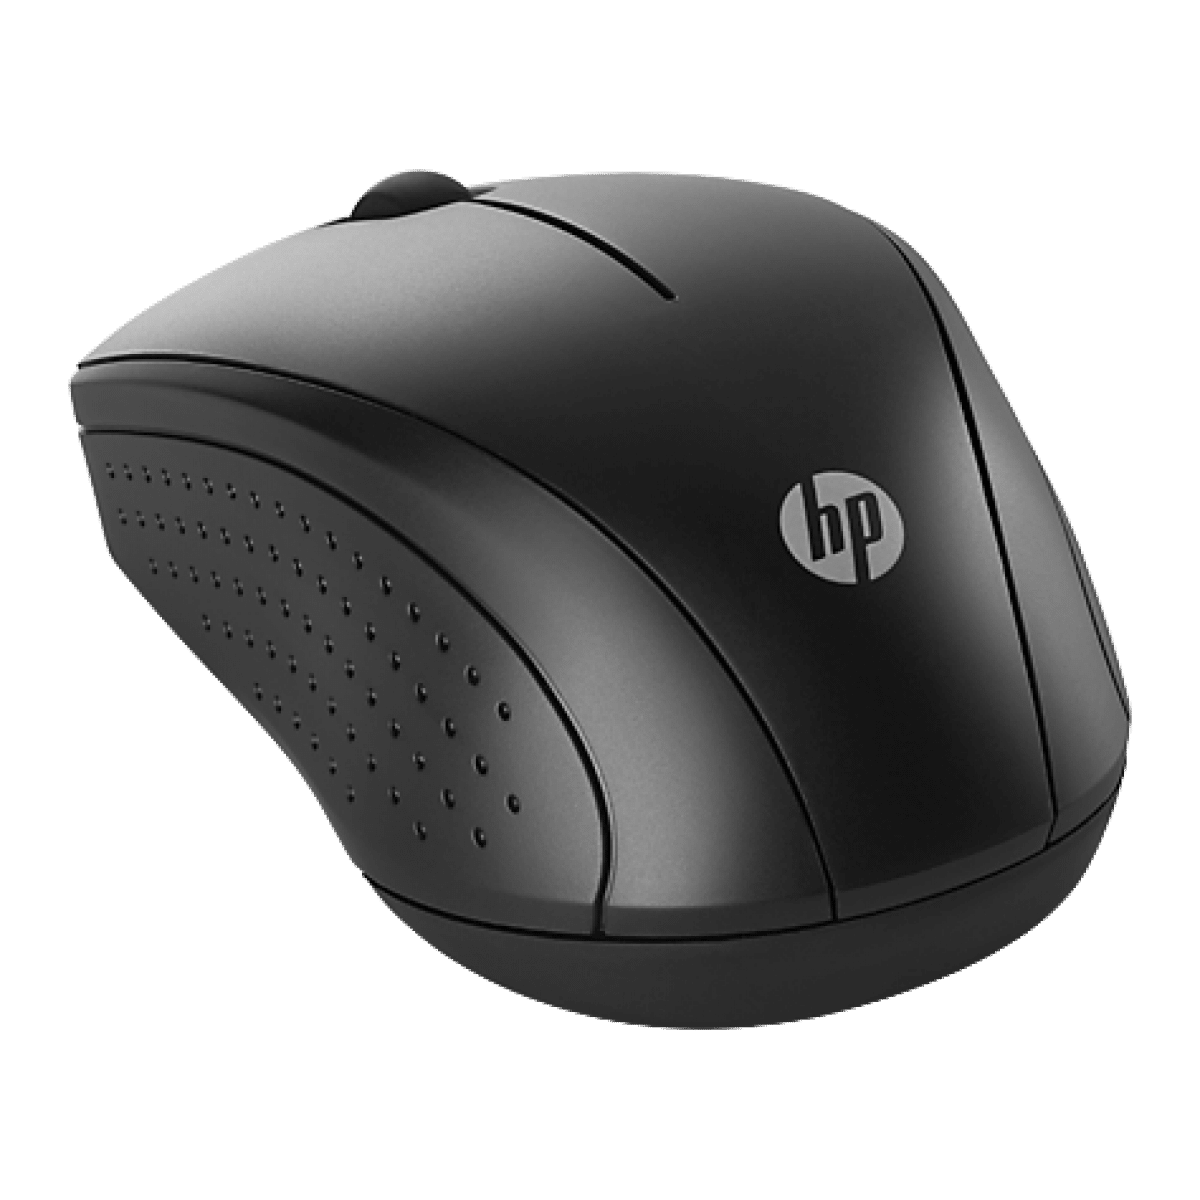 Mouse Hewlett Packard (HP) Wireless Bluetooth